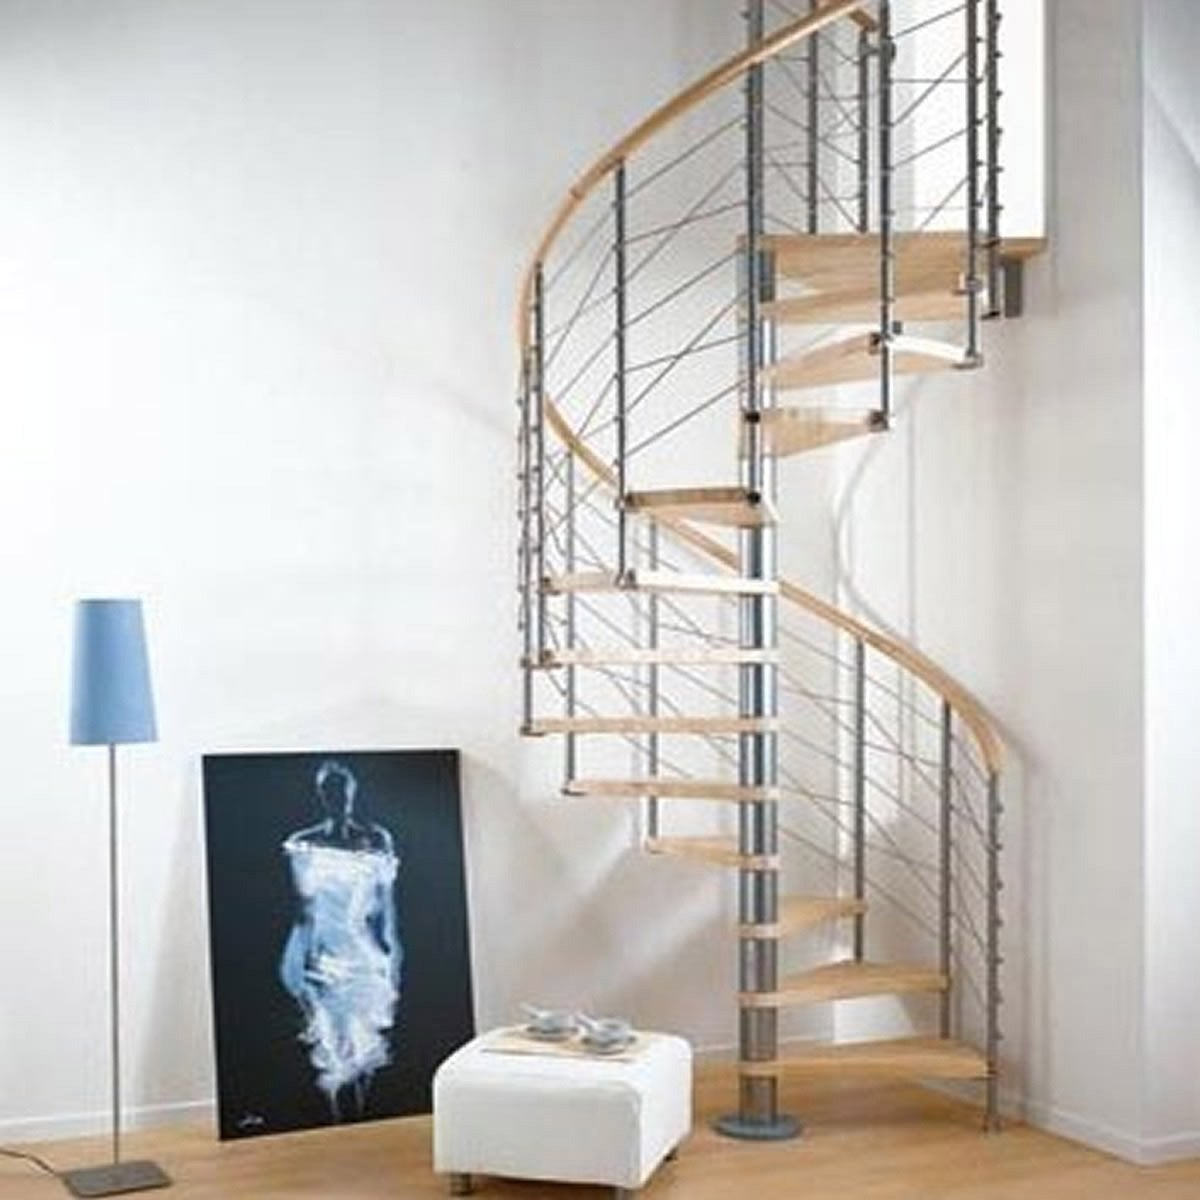 Escalier colima on rond ring structure m tal marche bois for Kit de renovation escalier leroy merlin